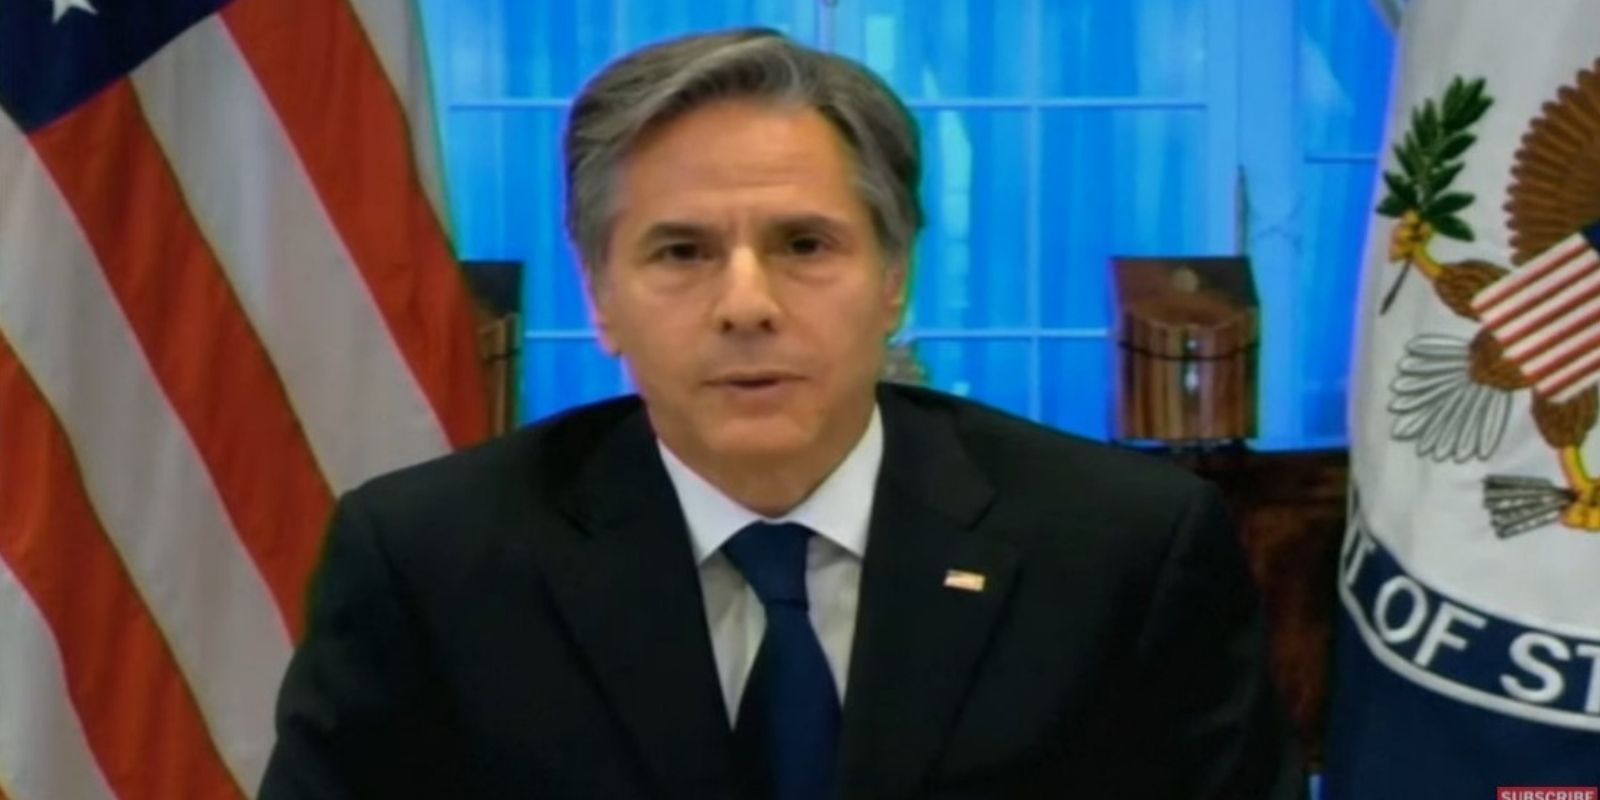 WATCH: Sec of State Blinken fails to say how many of 60,000 Afghans don't have SIV status